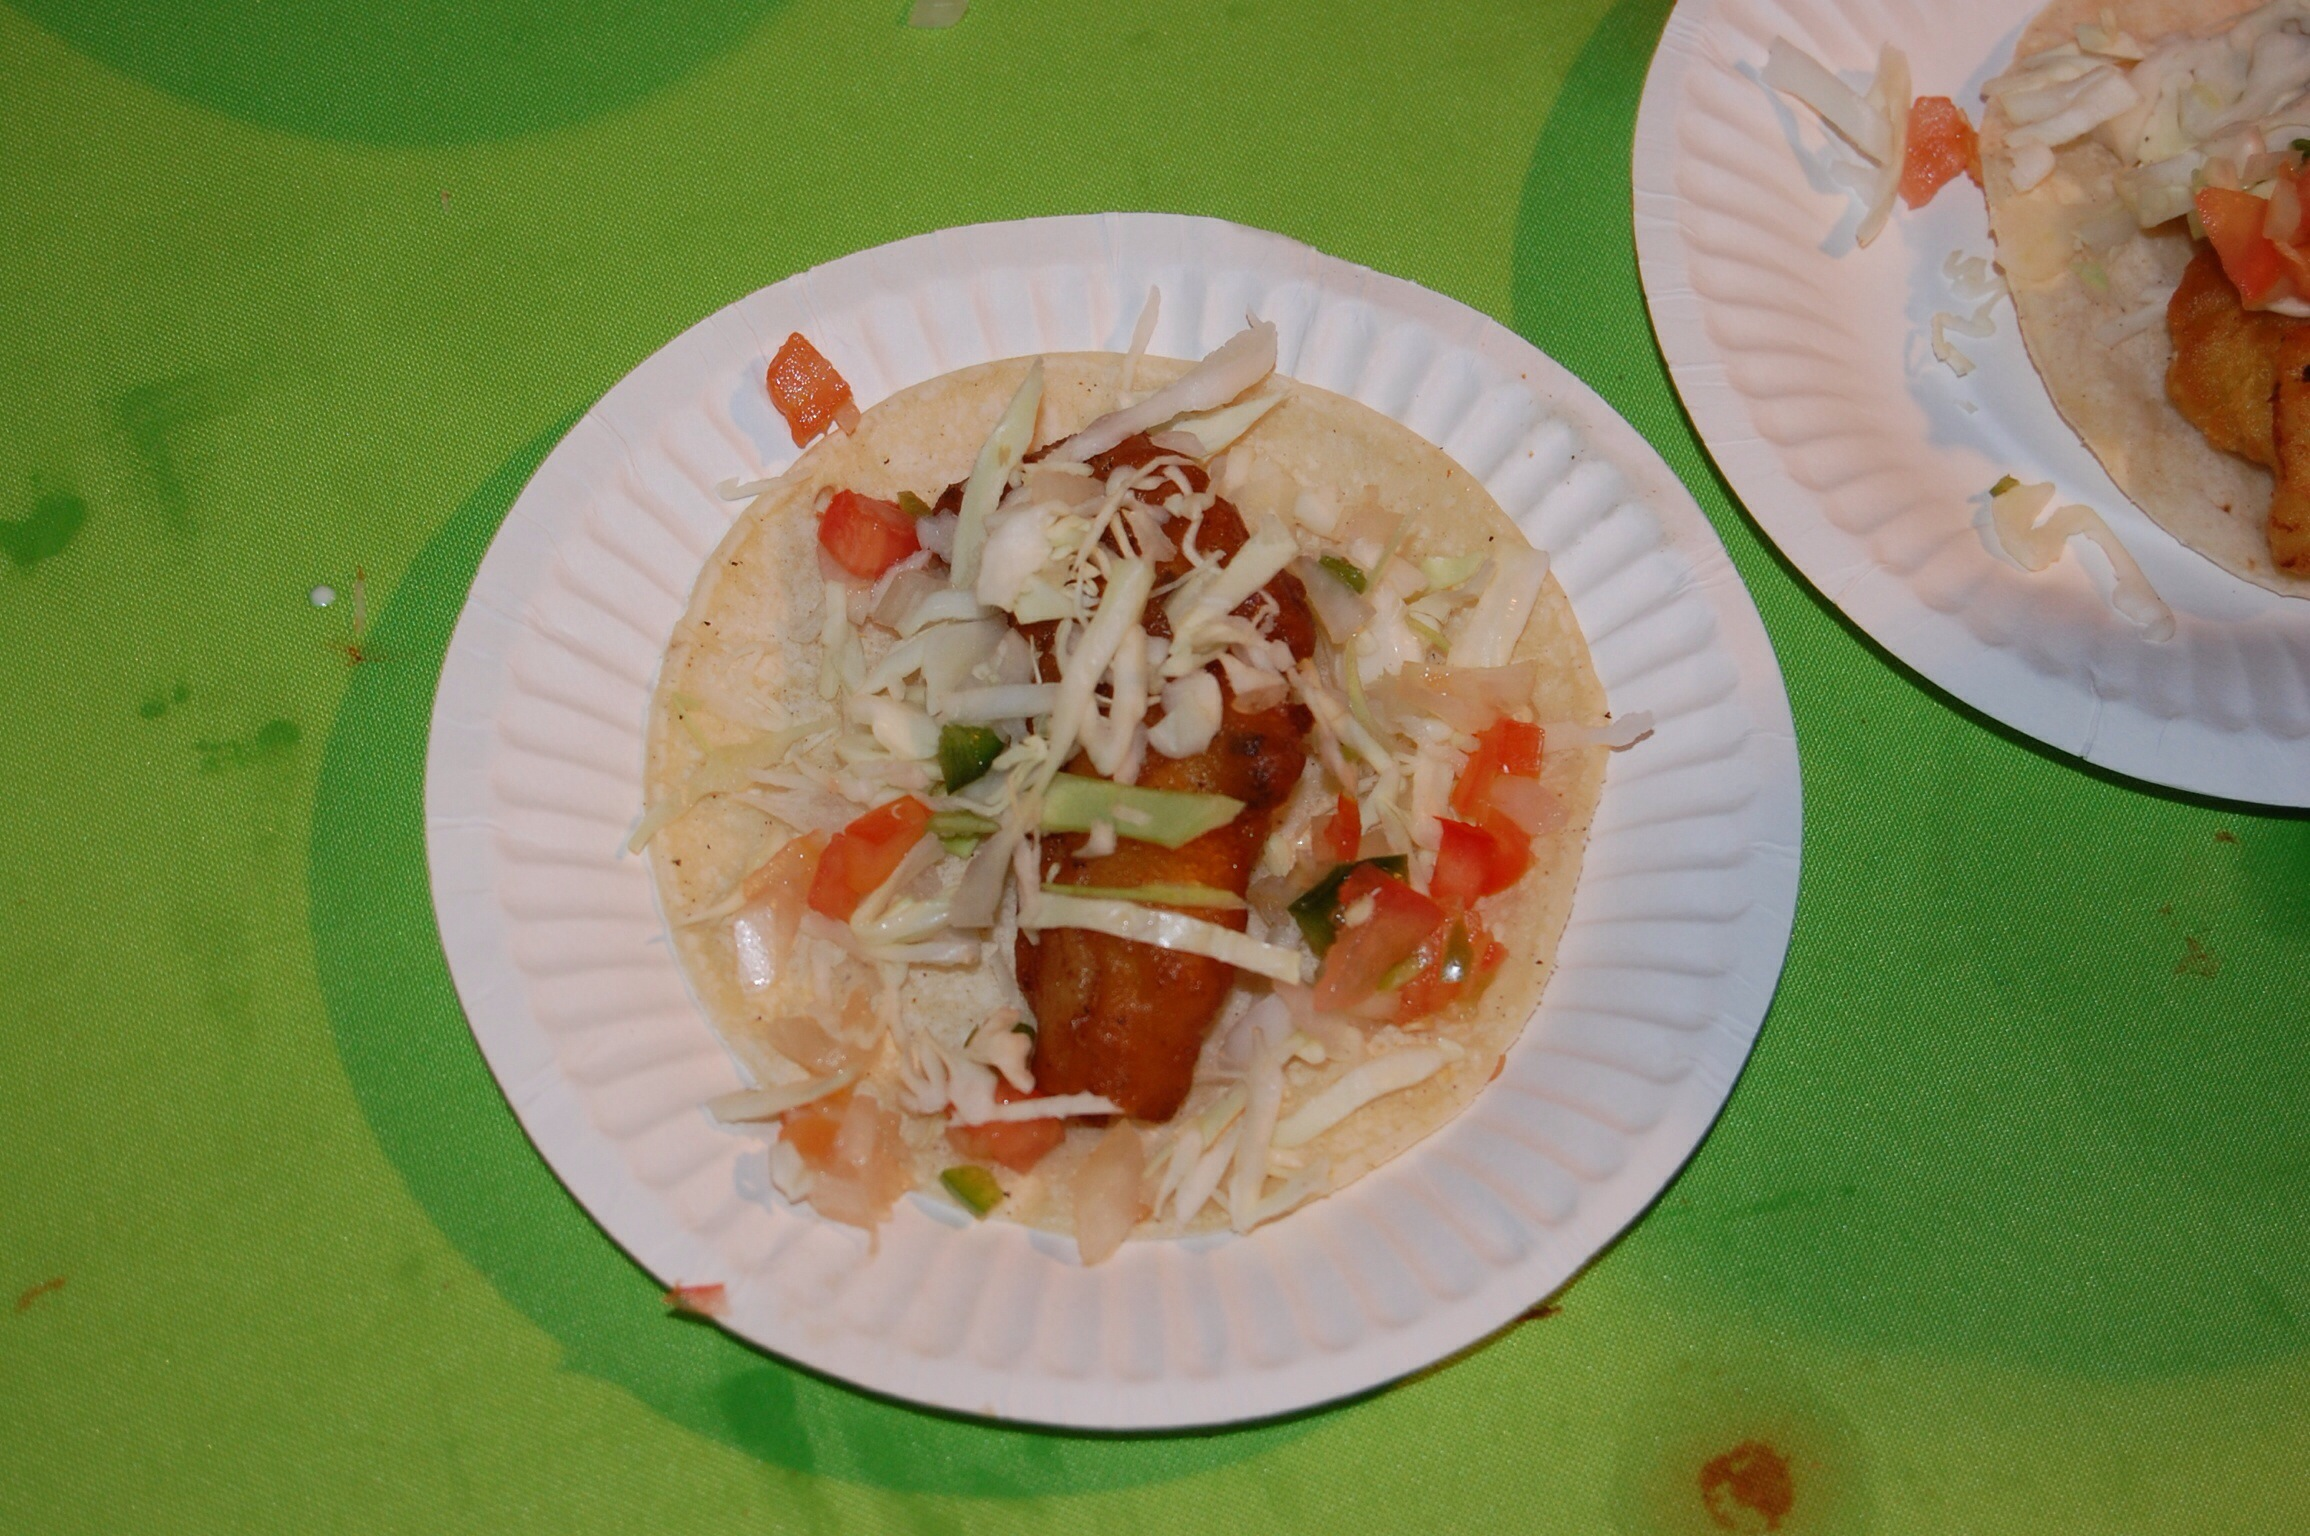 Ricky's Fish Tacos at The Taste of Mexico 2013